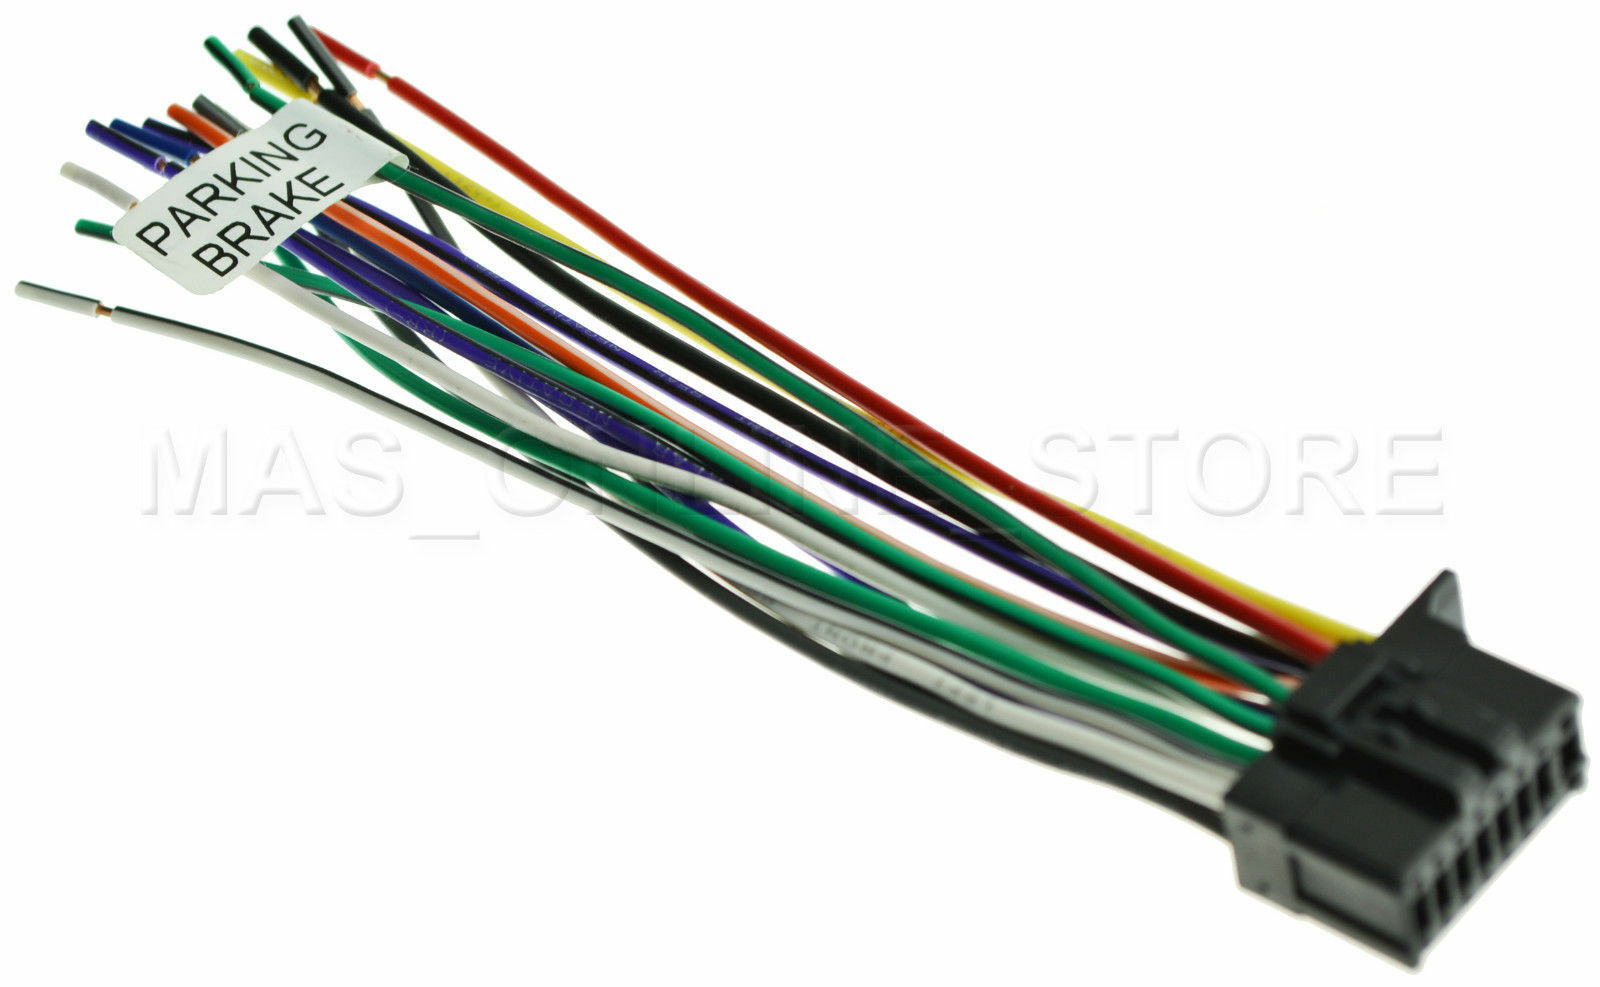 Wire Harness For Pioneer Avhx2700bs Avh X2700bs Pay Today Ships P4000dvd Bypass 1 Of 3free Shipping